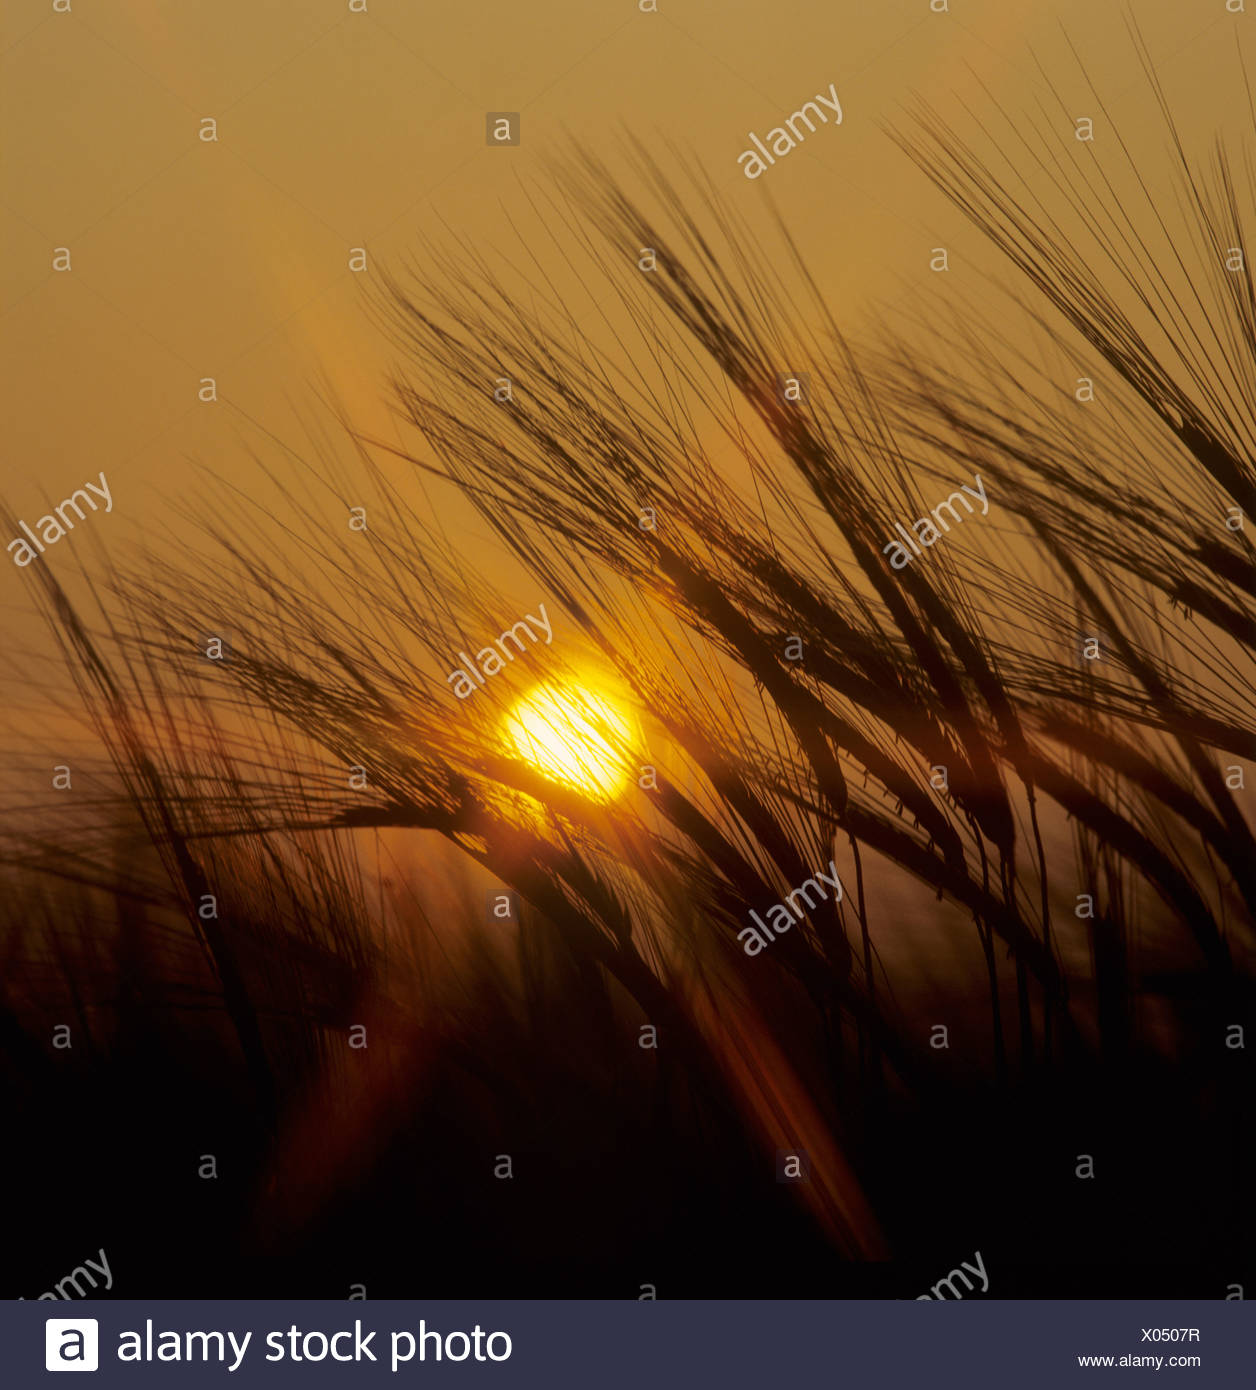 Flowering ears of unripe barley silouetted against a setting sun - Stock Image